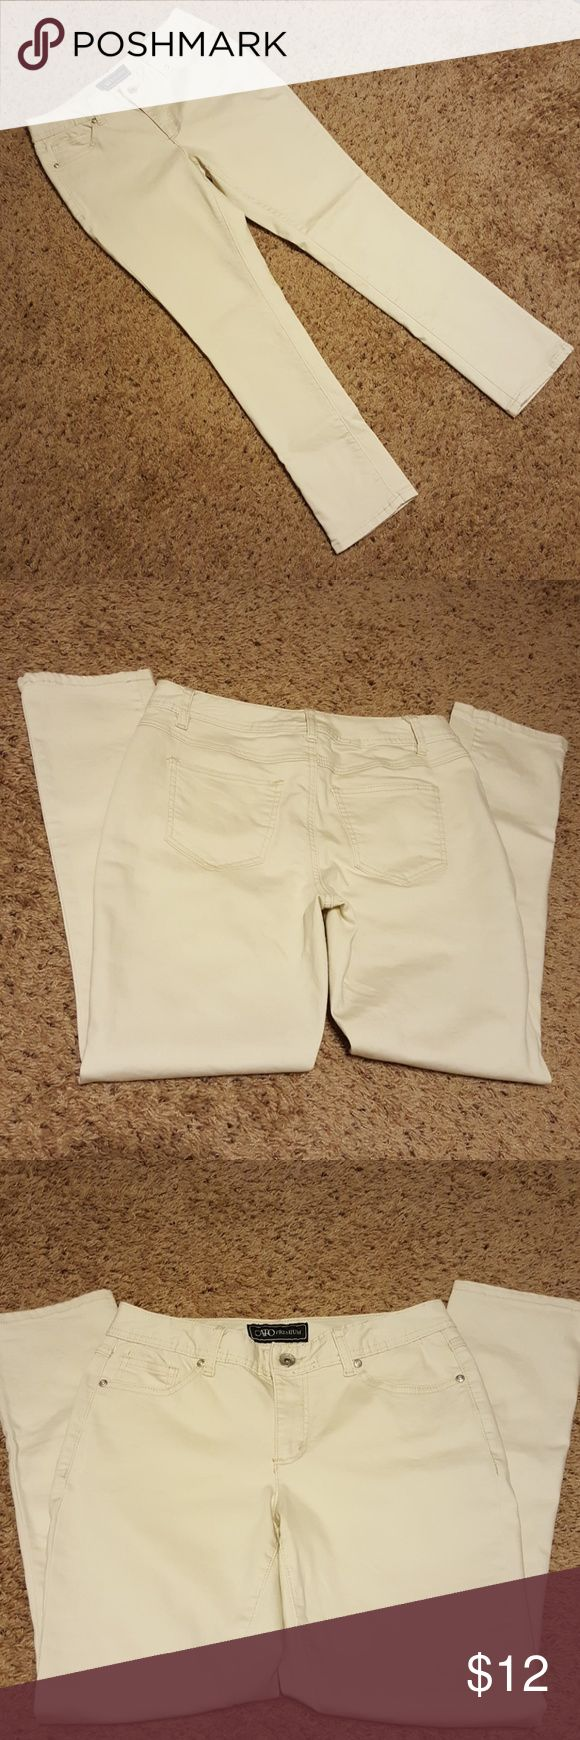 """Cato Premium Jeans Size 6 New without tags! Off white pants. They have more of a jeans texture. 4 real pockets. Laid flat: 38"""" length, 16"""" waist. Cato Premium Jeans"""